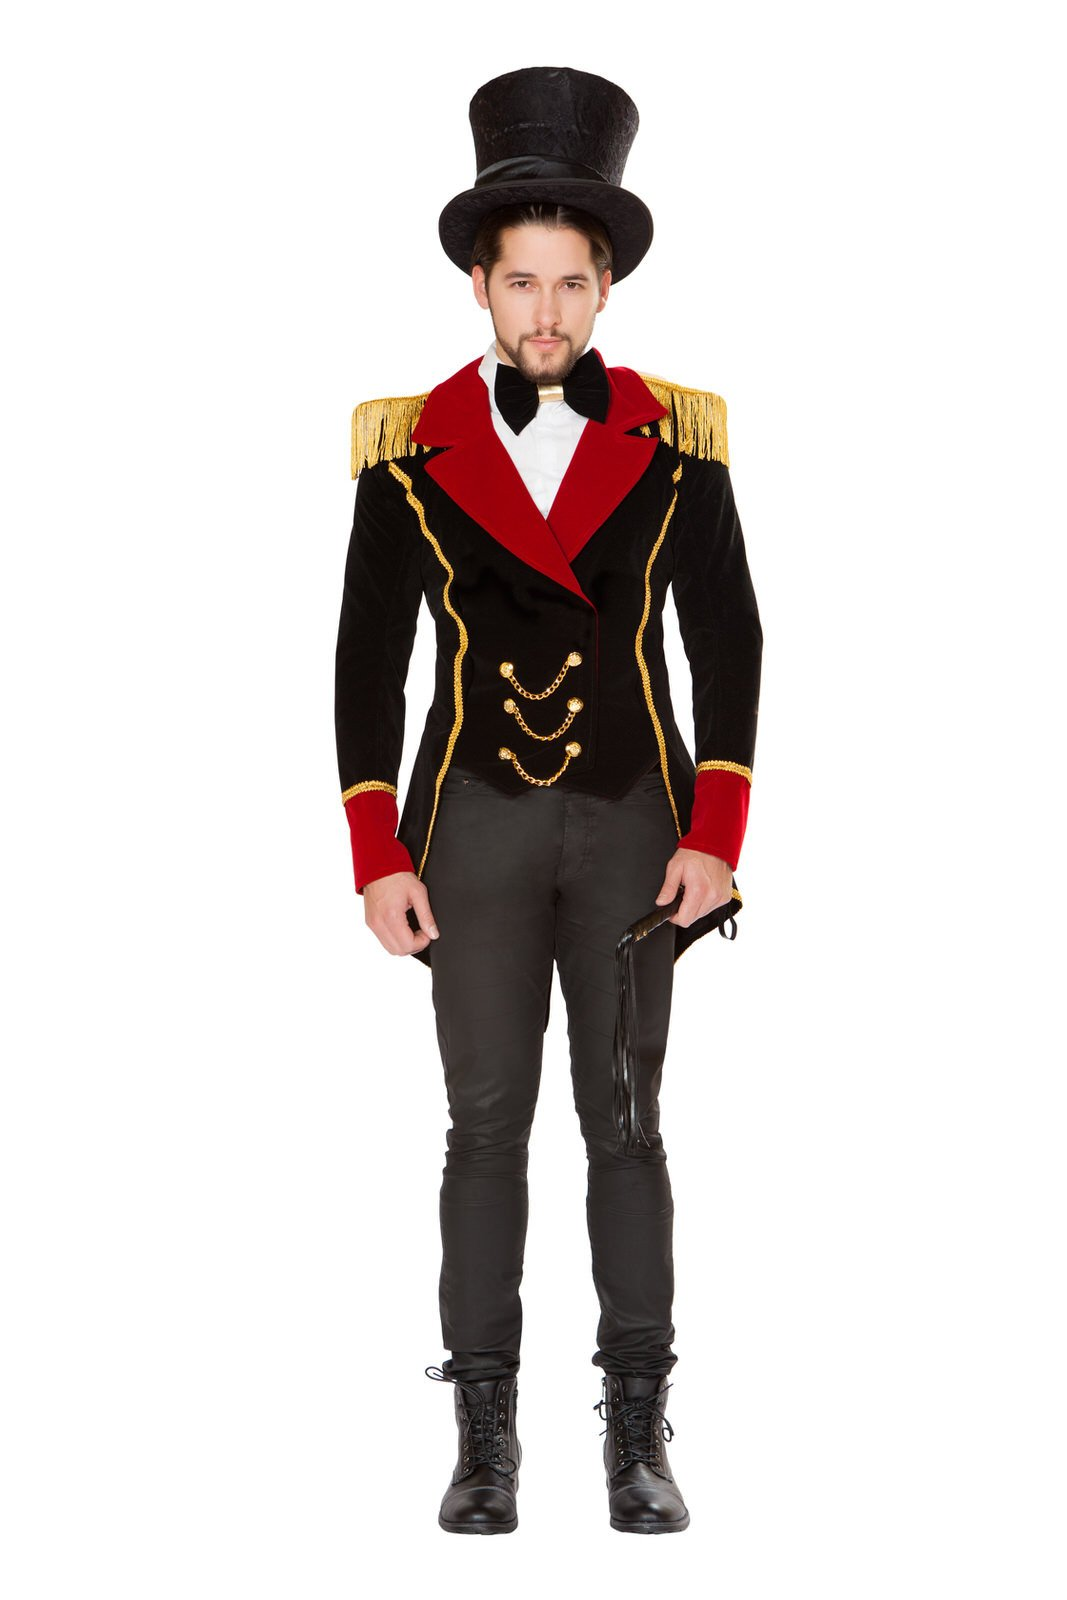 Buy 4820 - 3pc Men's Ringmaster from Rave Fix for $75.00 with Same Day Shipping Designed by Roma Costume 4820-AS-S